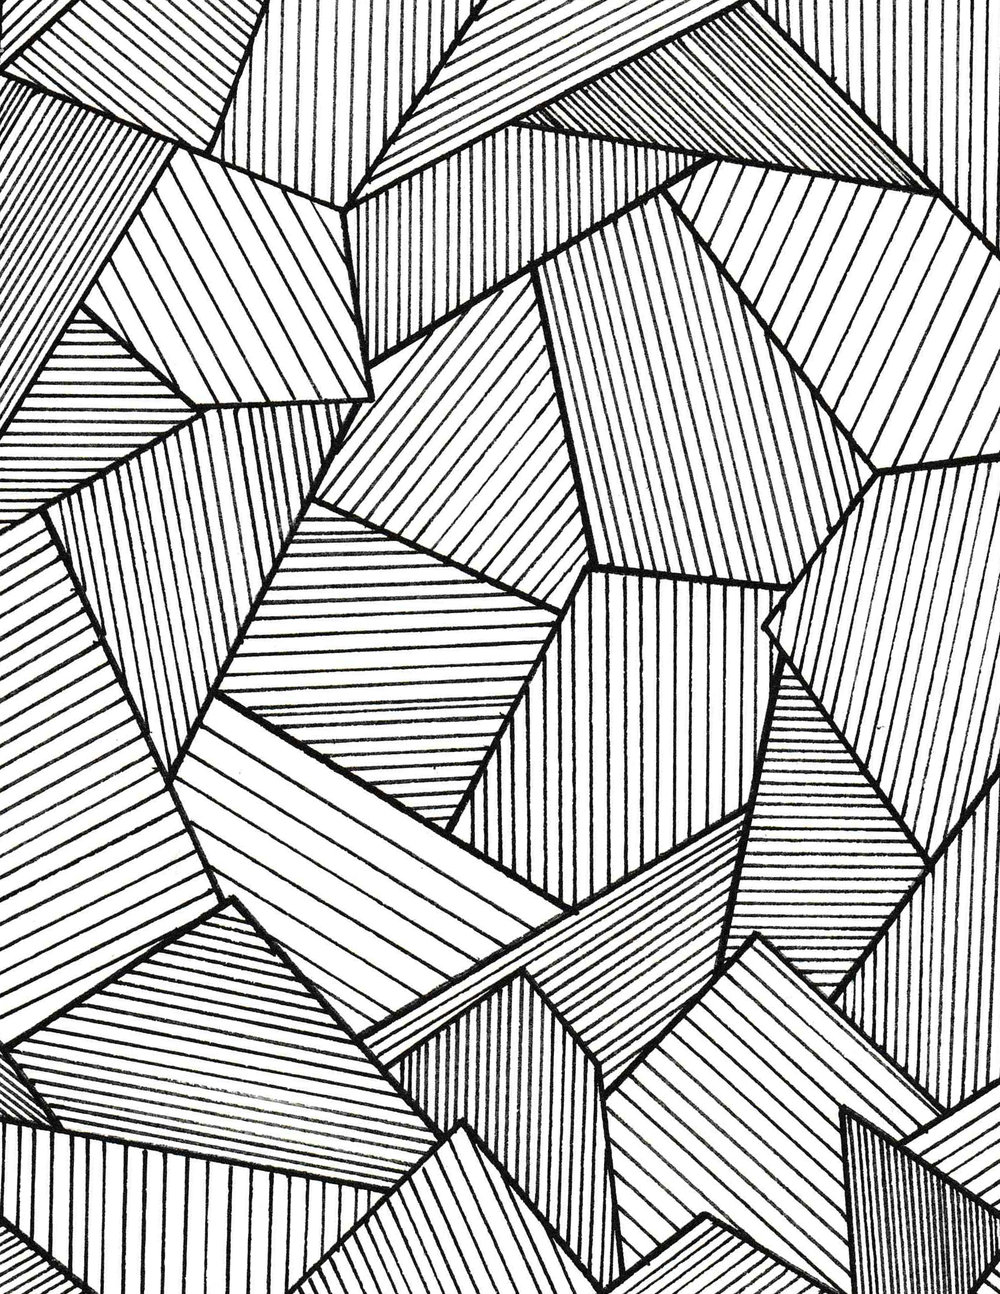 checkered board coloring page.jpg